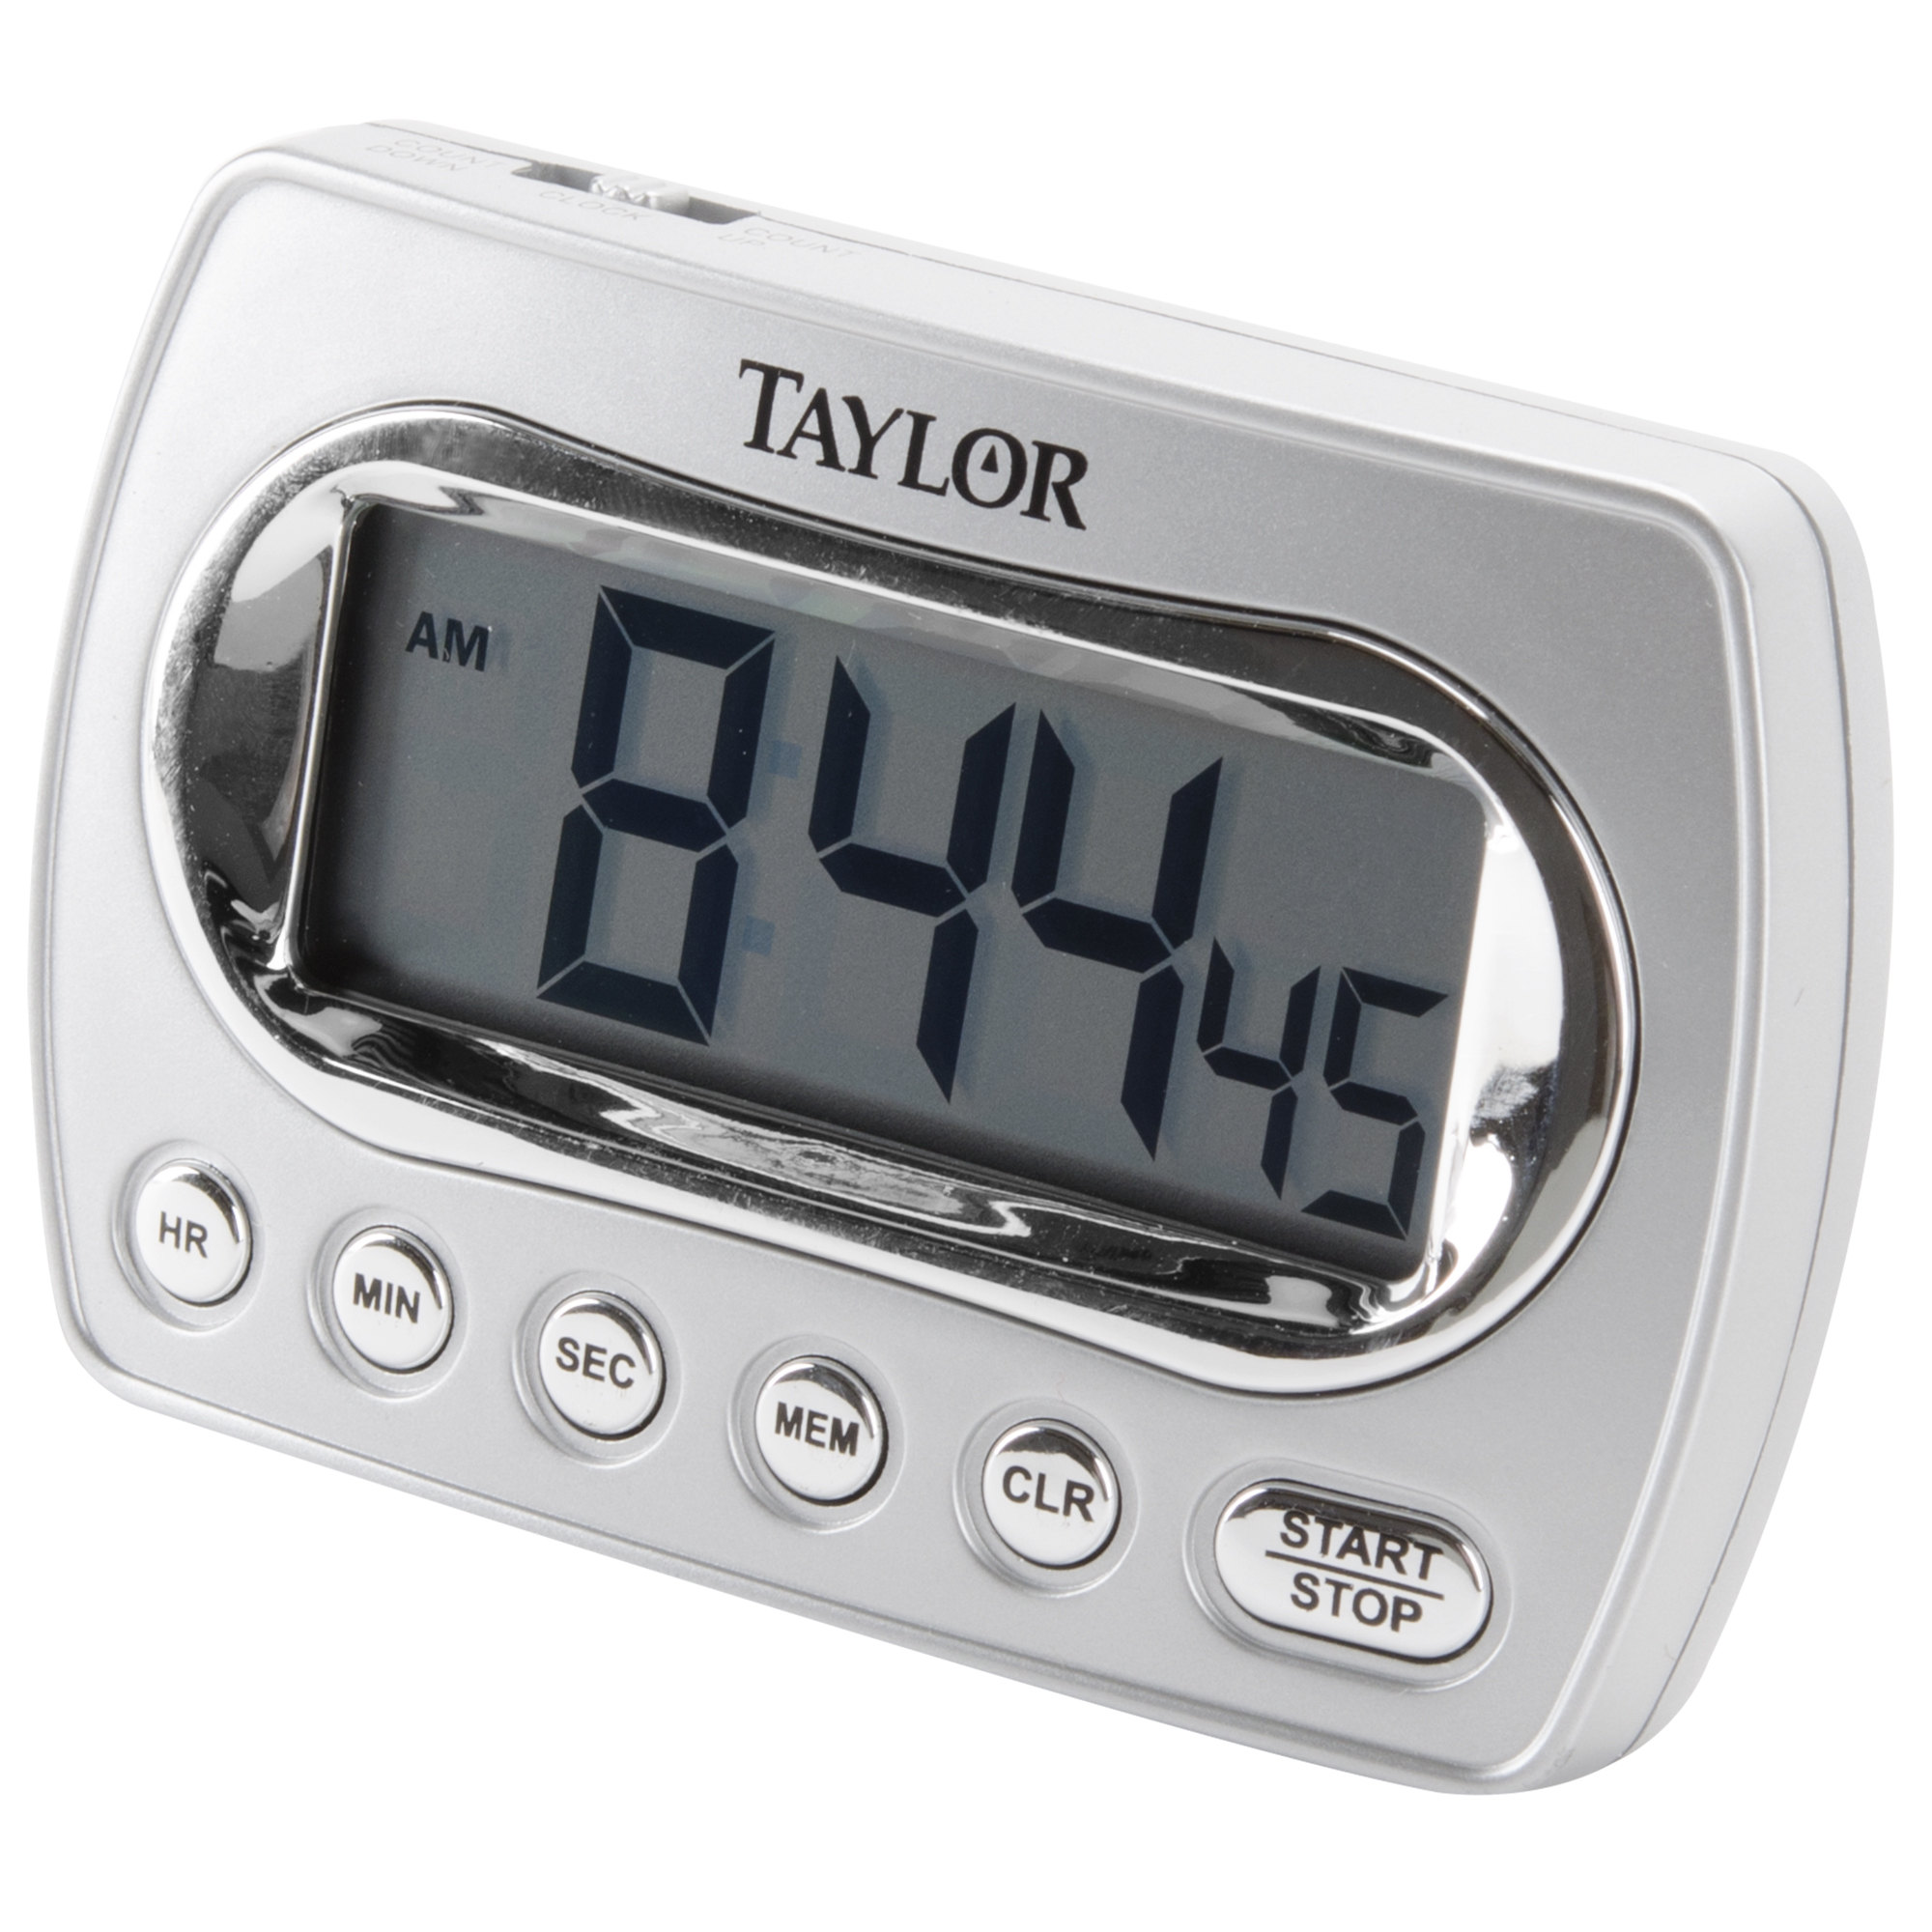 Taylor Digital Chrome Timer With Memory And Clock #5847-21